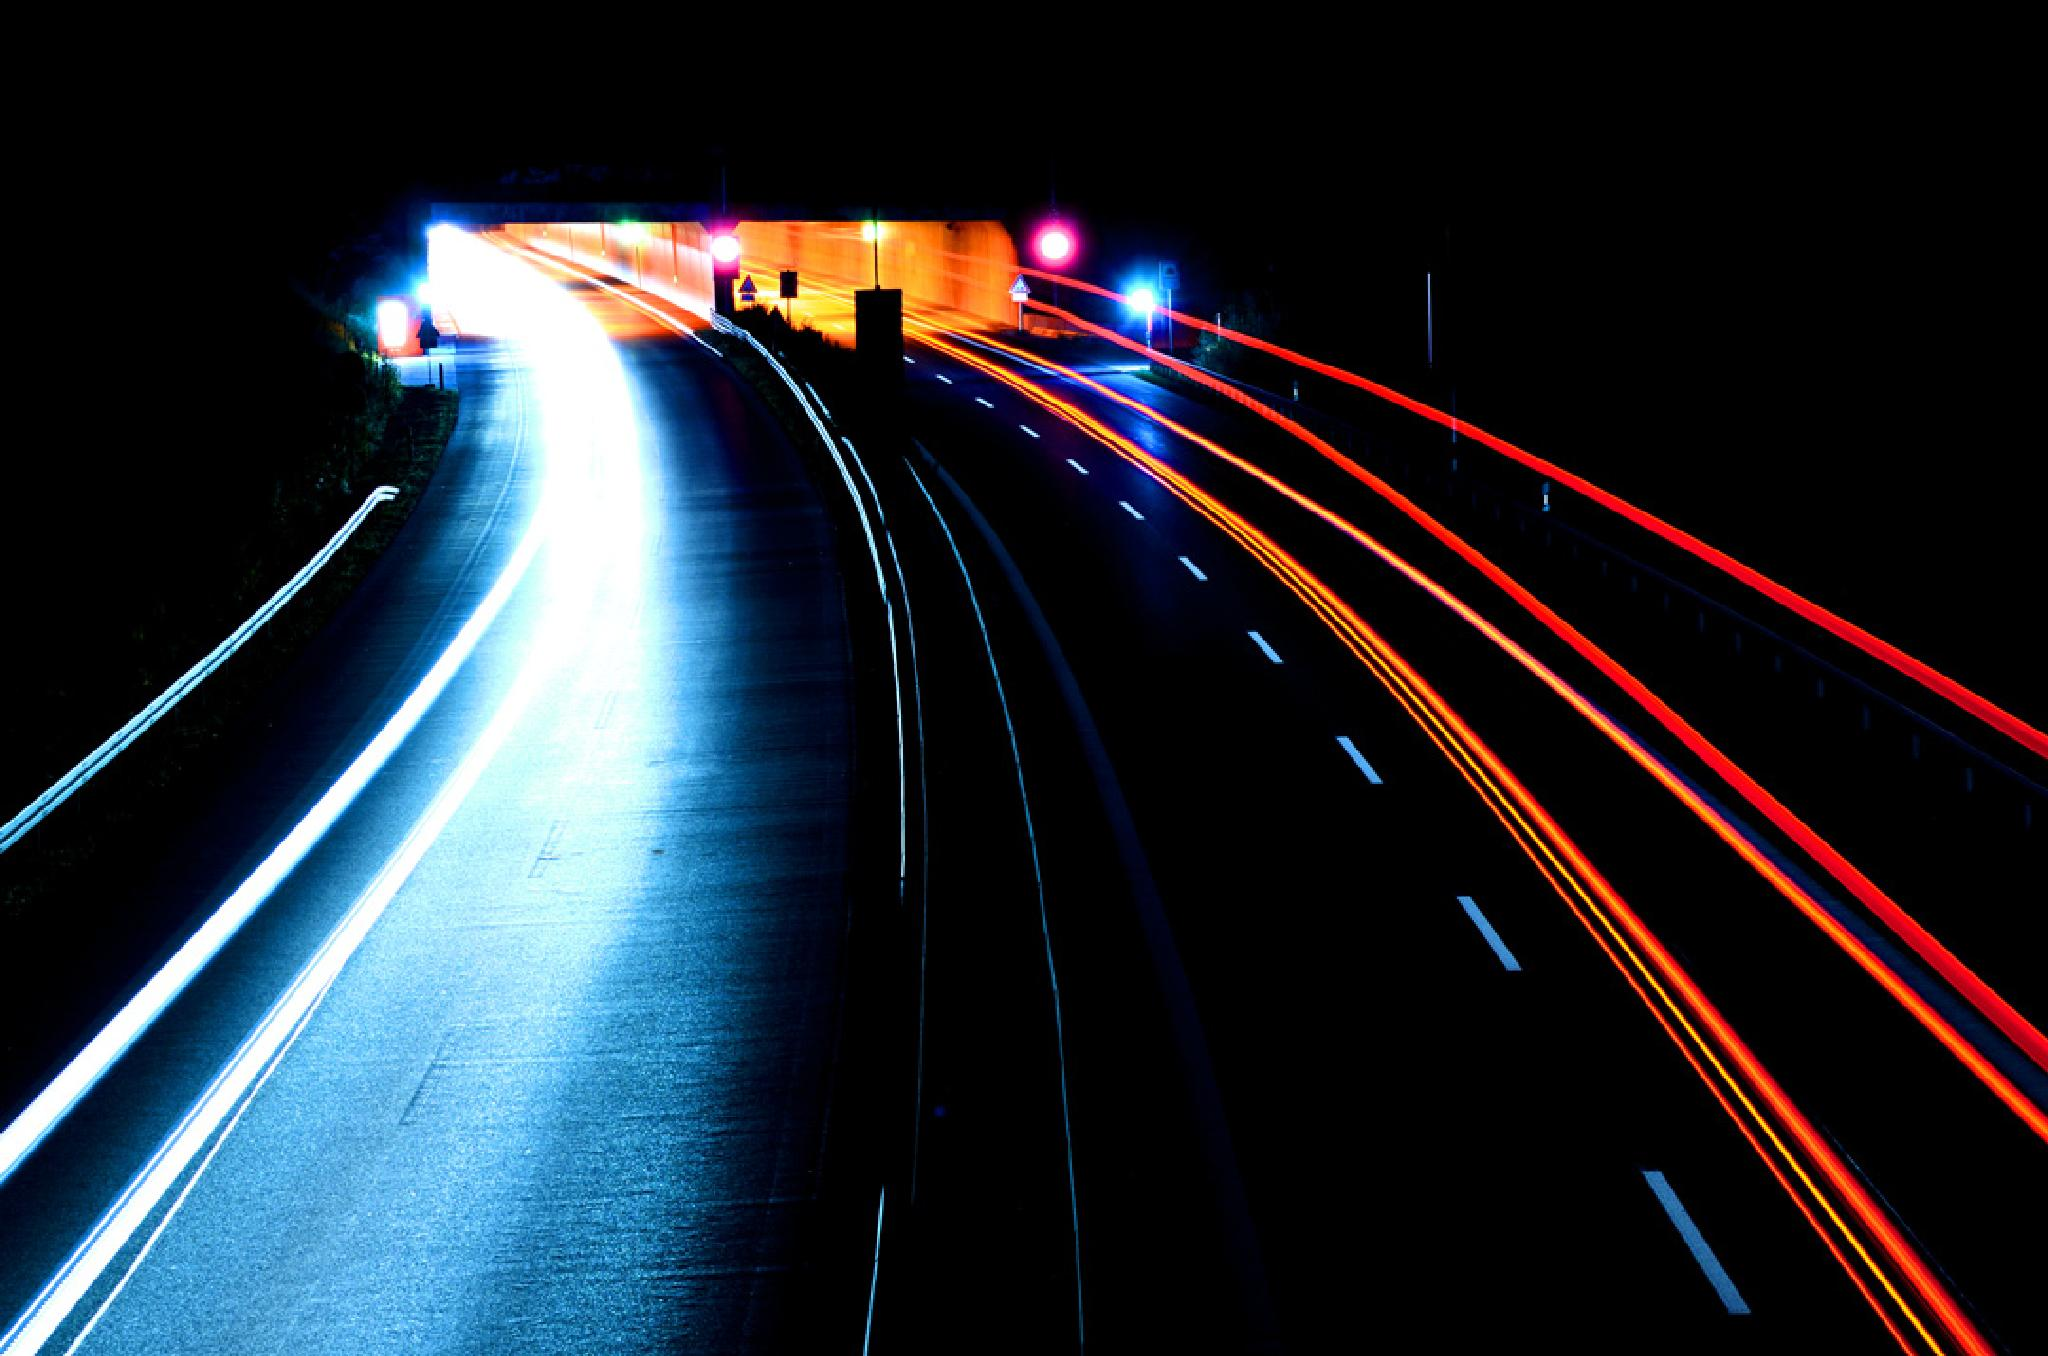 Veins of mobility: Night motorway by Oliver Brecht